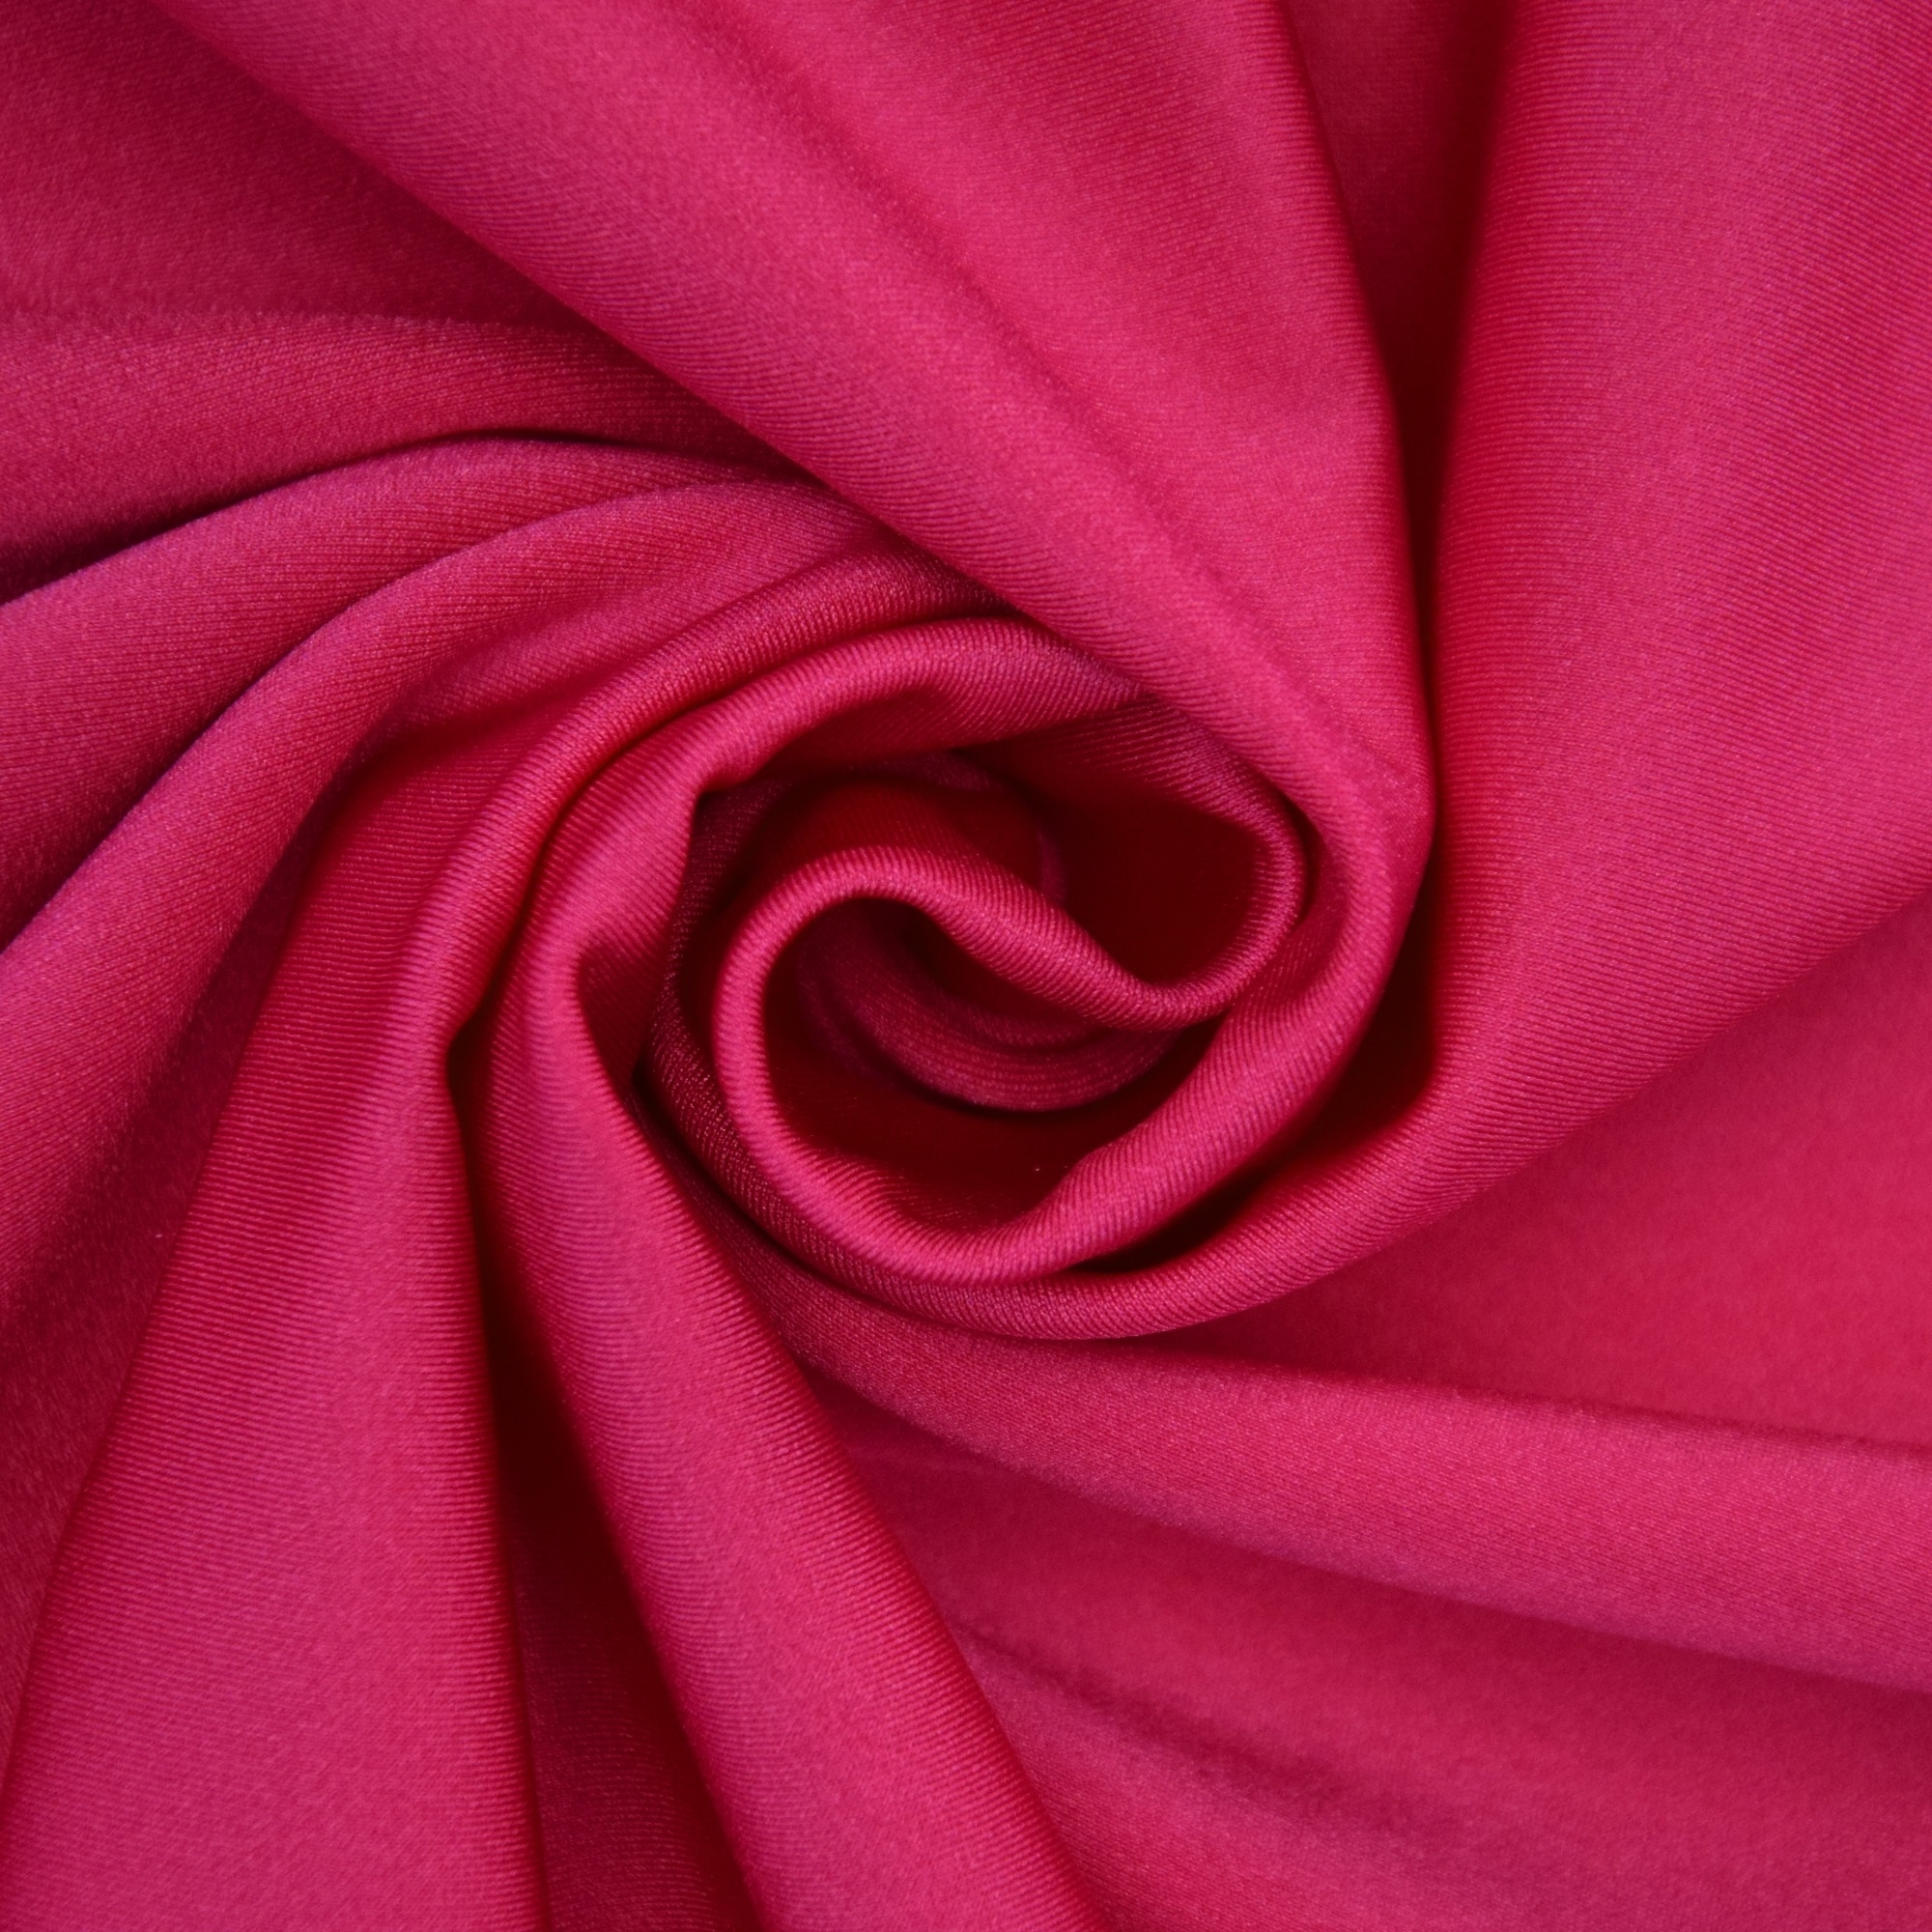 Swimsuit fabric pink 2 | 110.473-7018 | pink